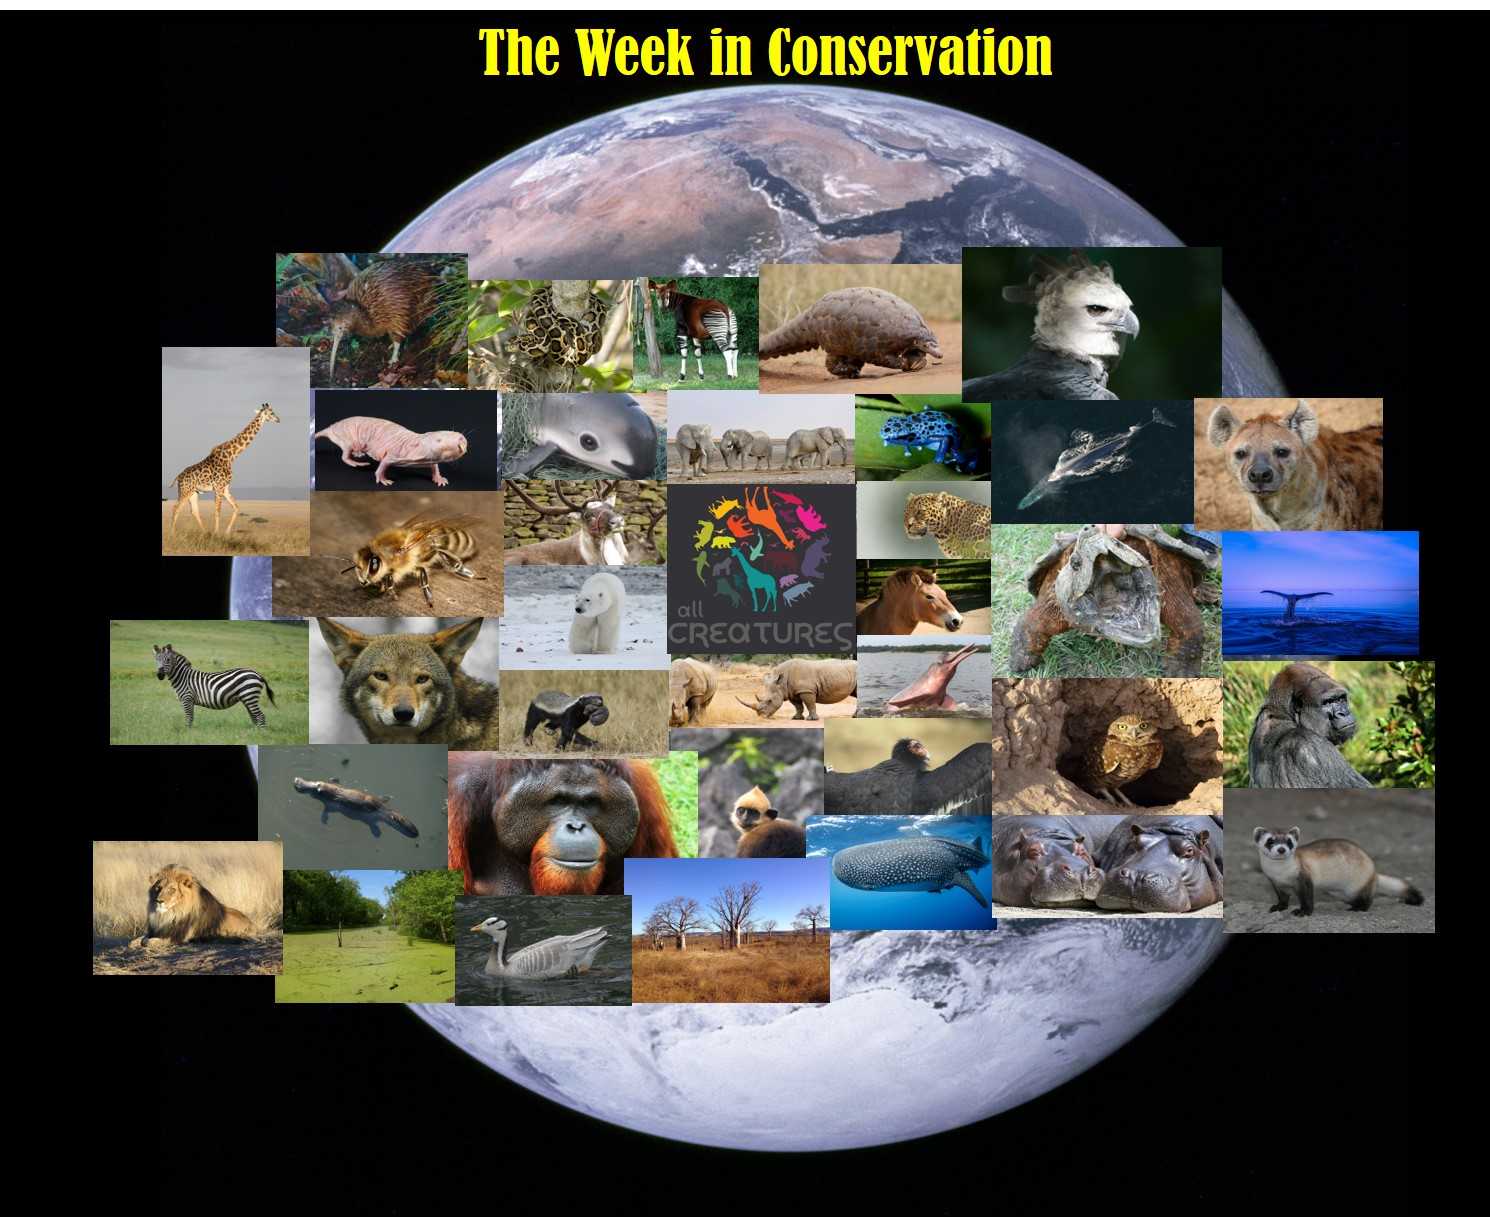 This Week in Conservation for July 13, 2018